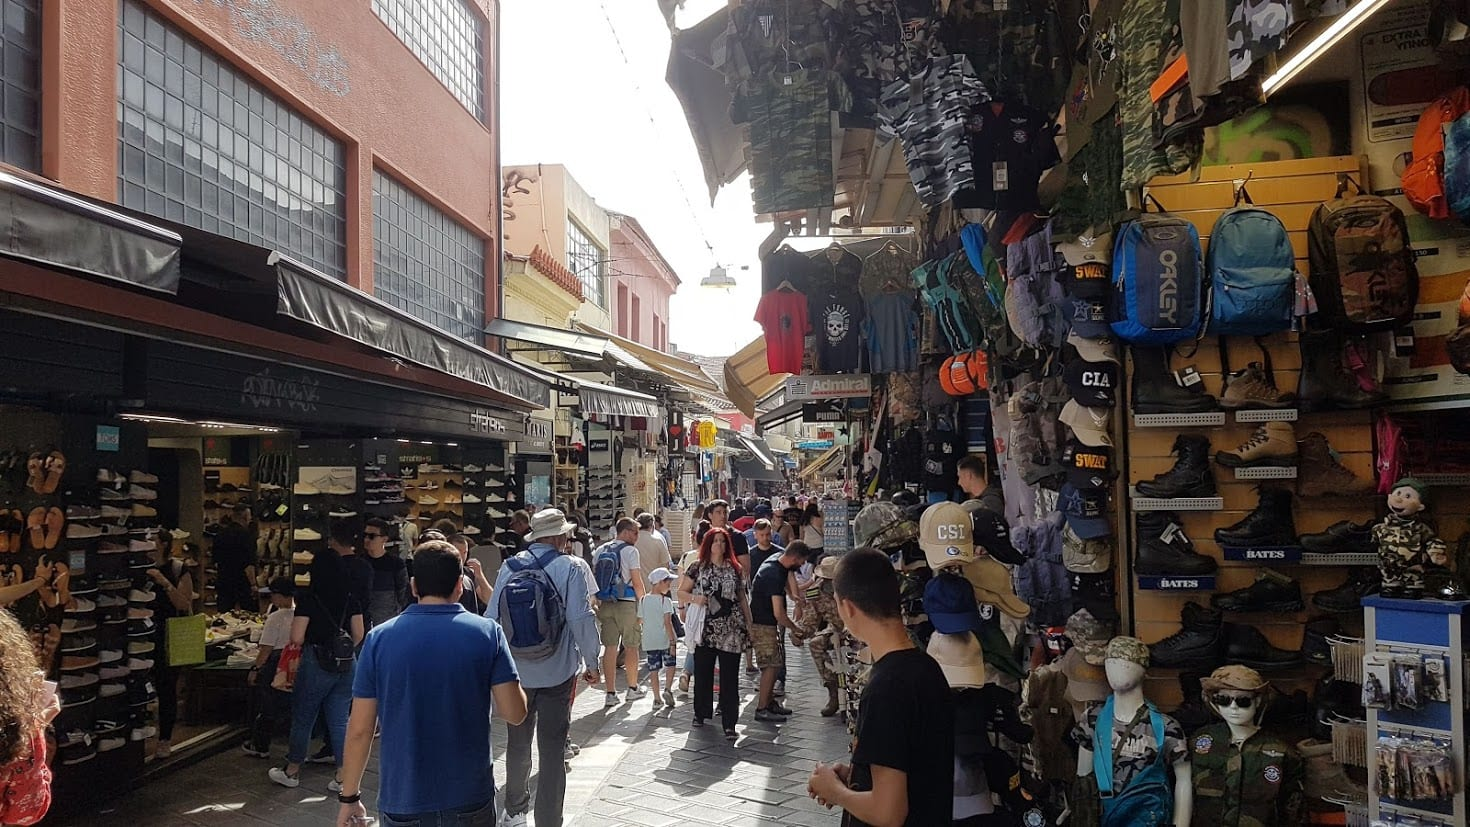 Shopping in Monastiraki flea market